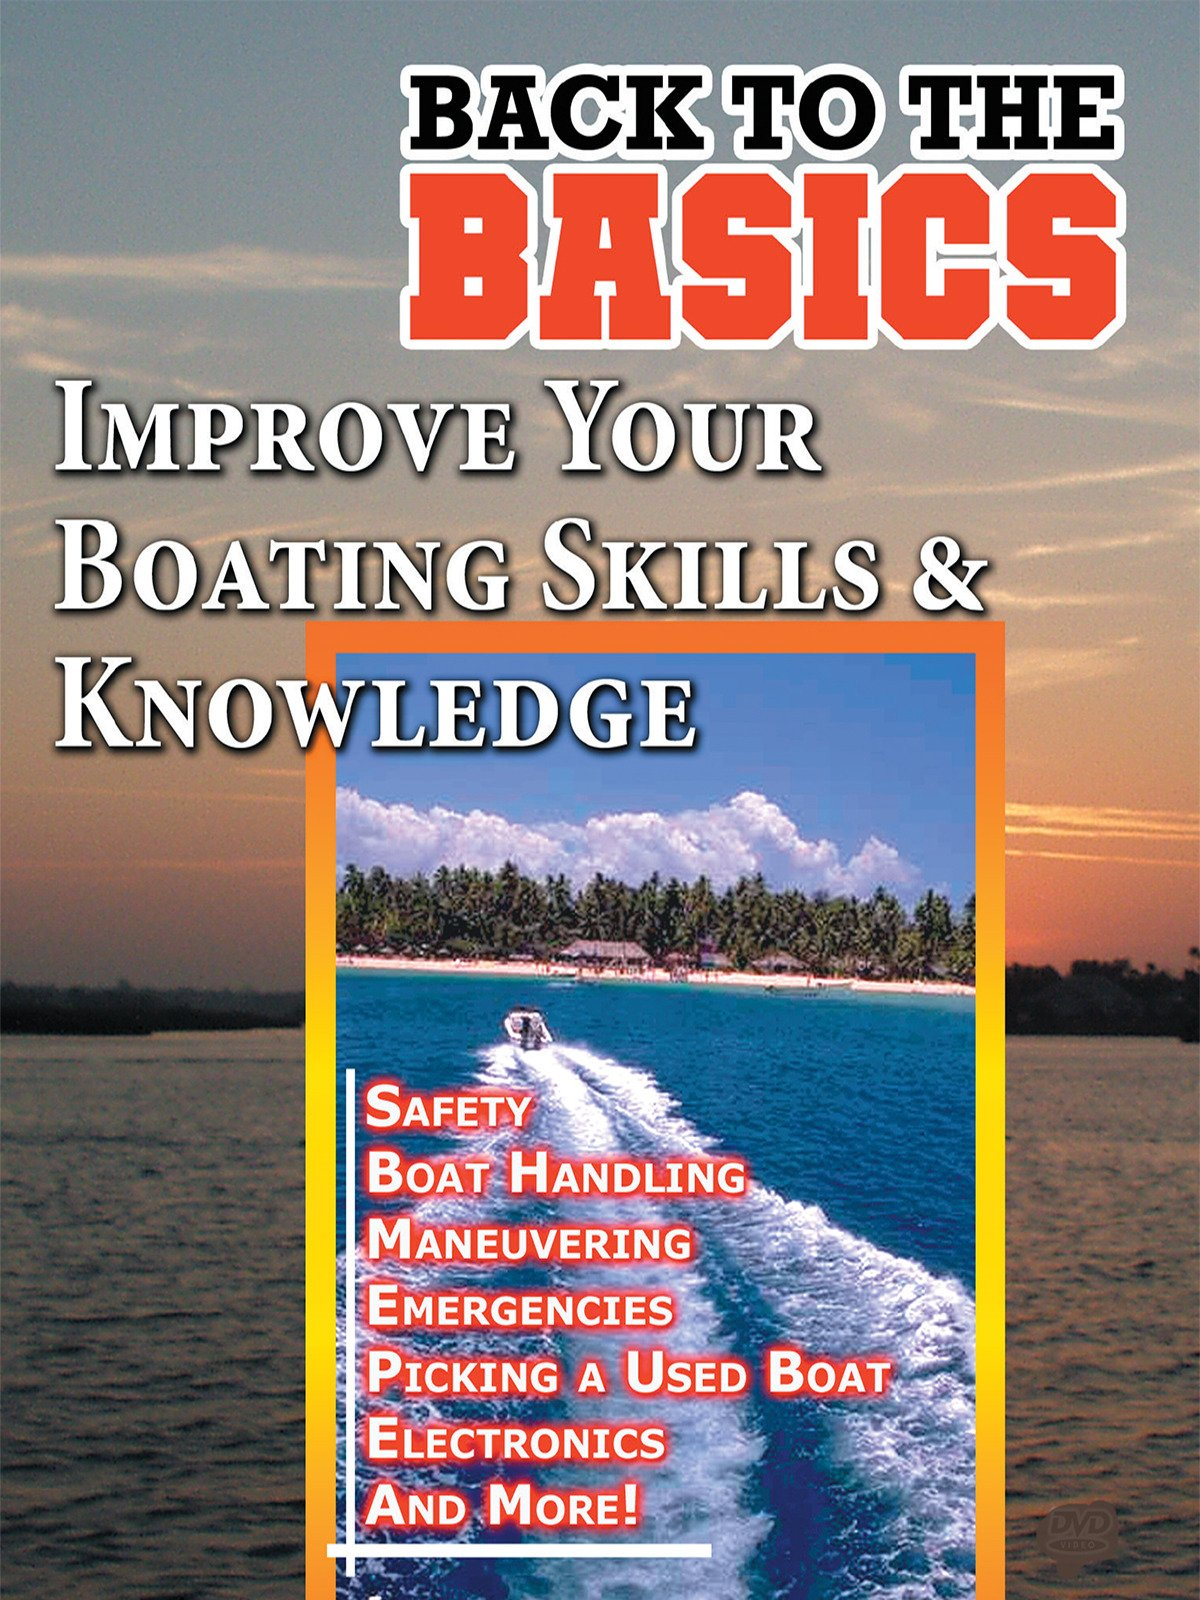 Improve Your Boating Skills & Knowledge